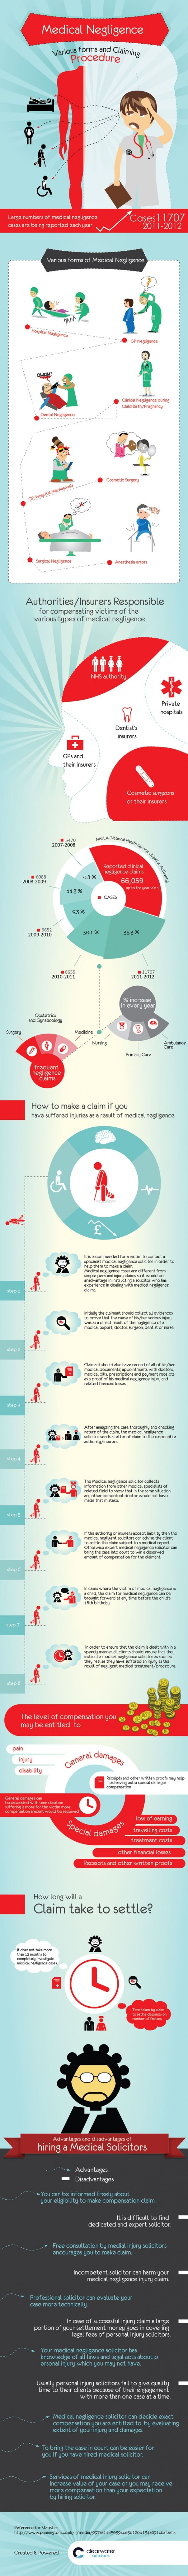 Medical-Negligence-infographic